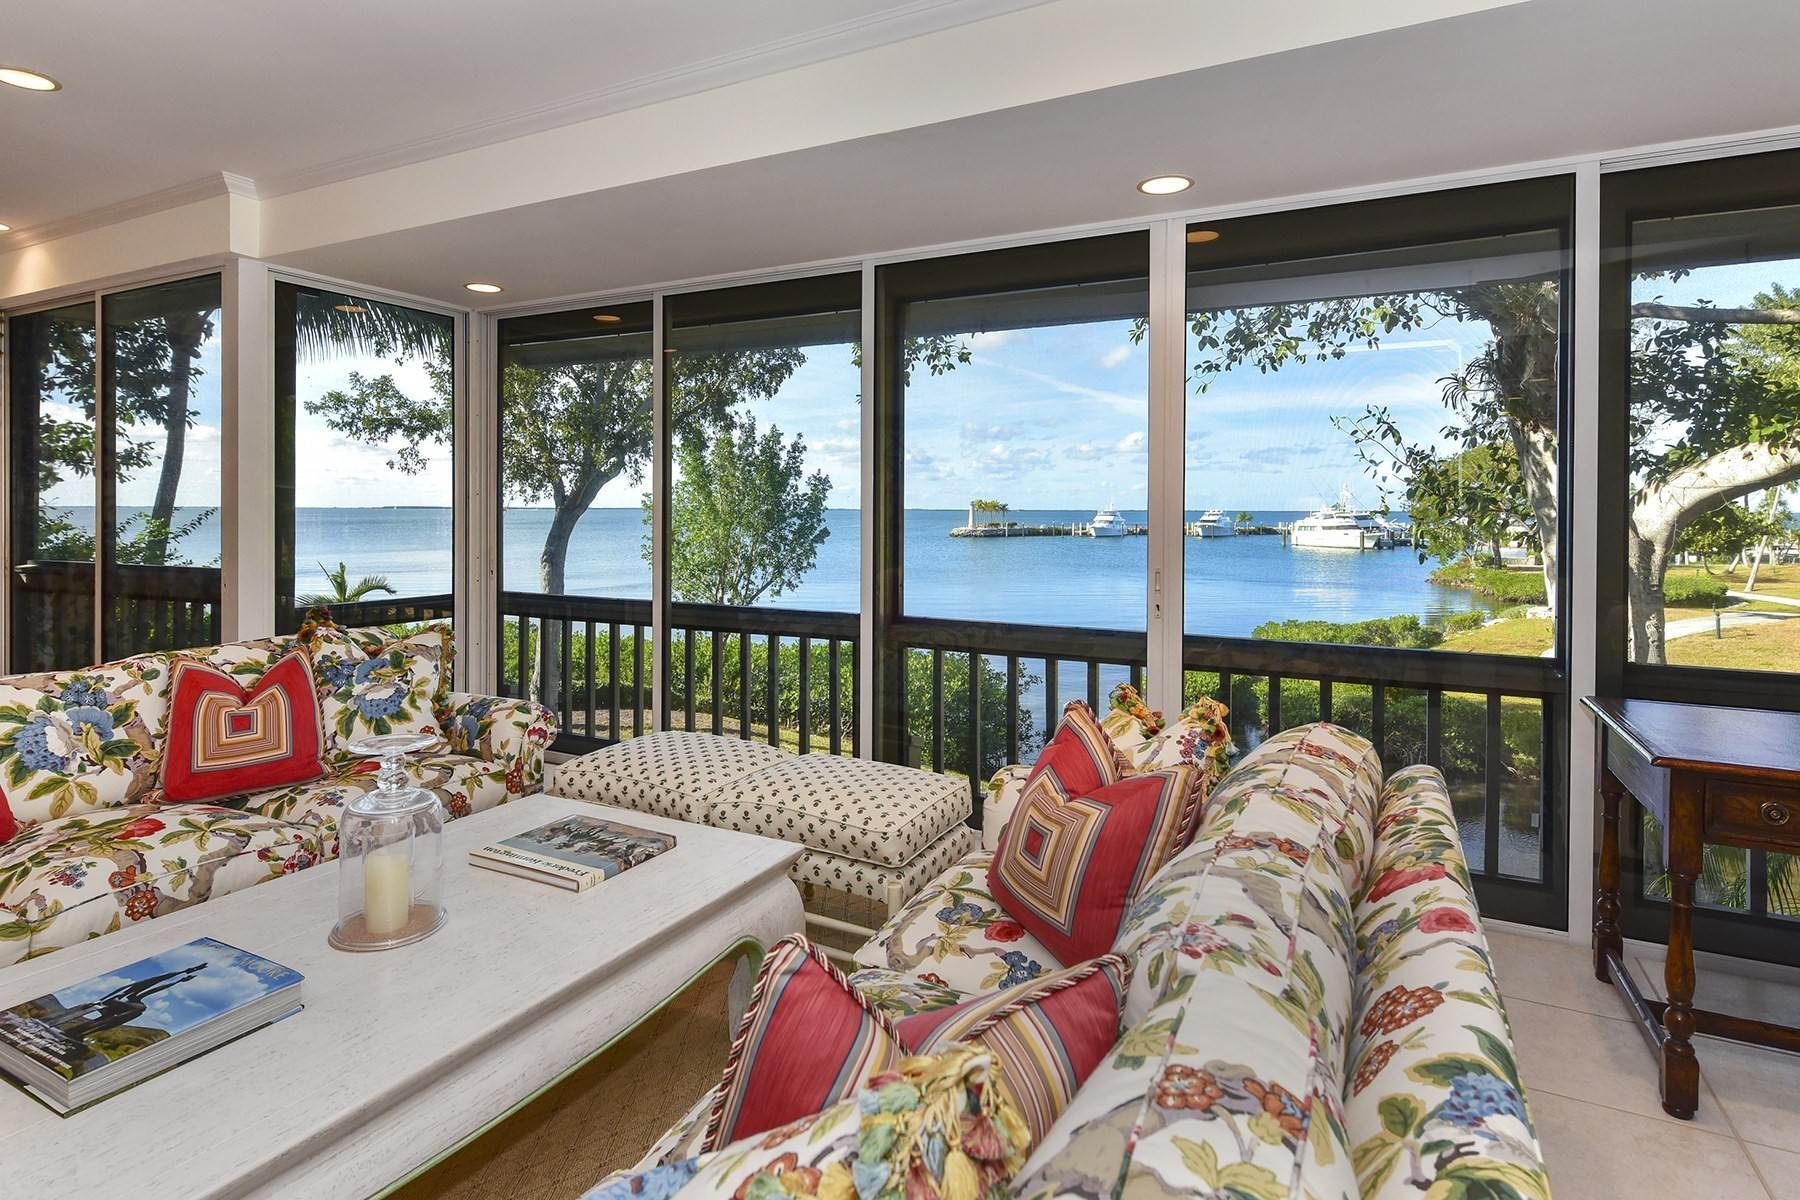 Condominiums for Sale at 29 Island Drive, Key Largo, FL 29 Island Drive Key Largo, Florida 33037 United States